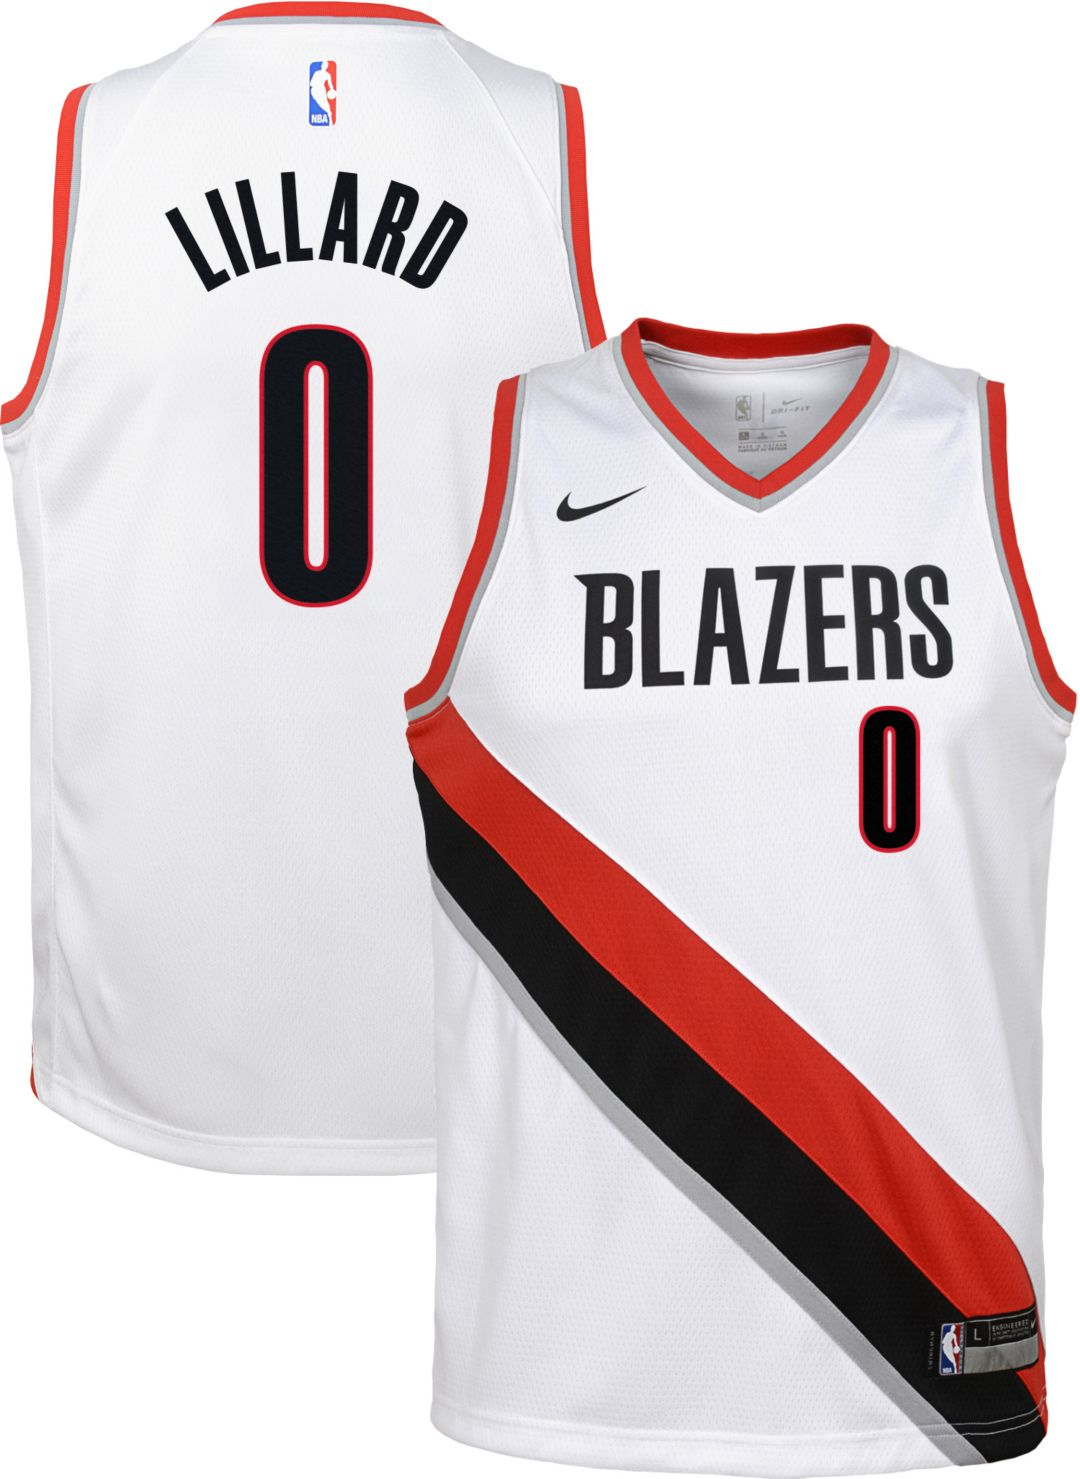 903bb141 Nike Youth Portland Trail Blazers Damian Lillard #0 White Dri-FIT ...